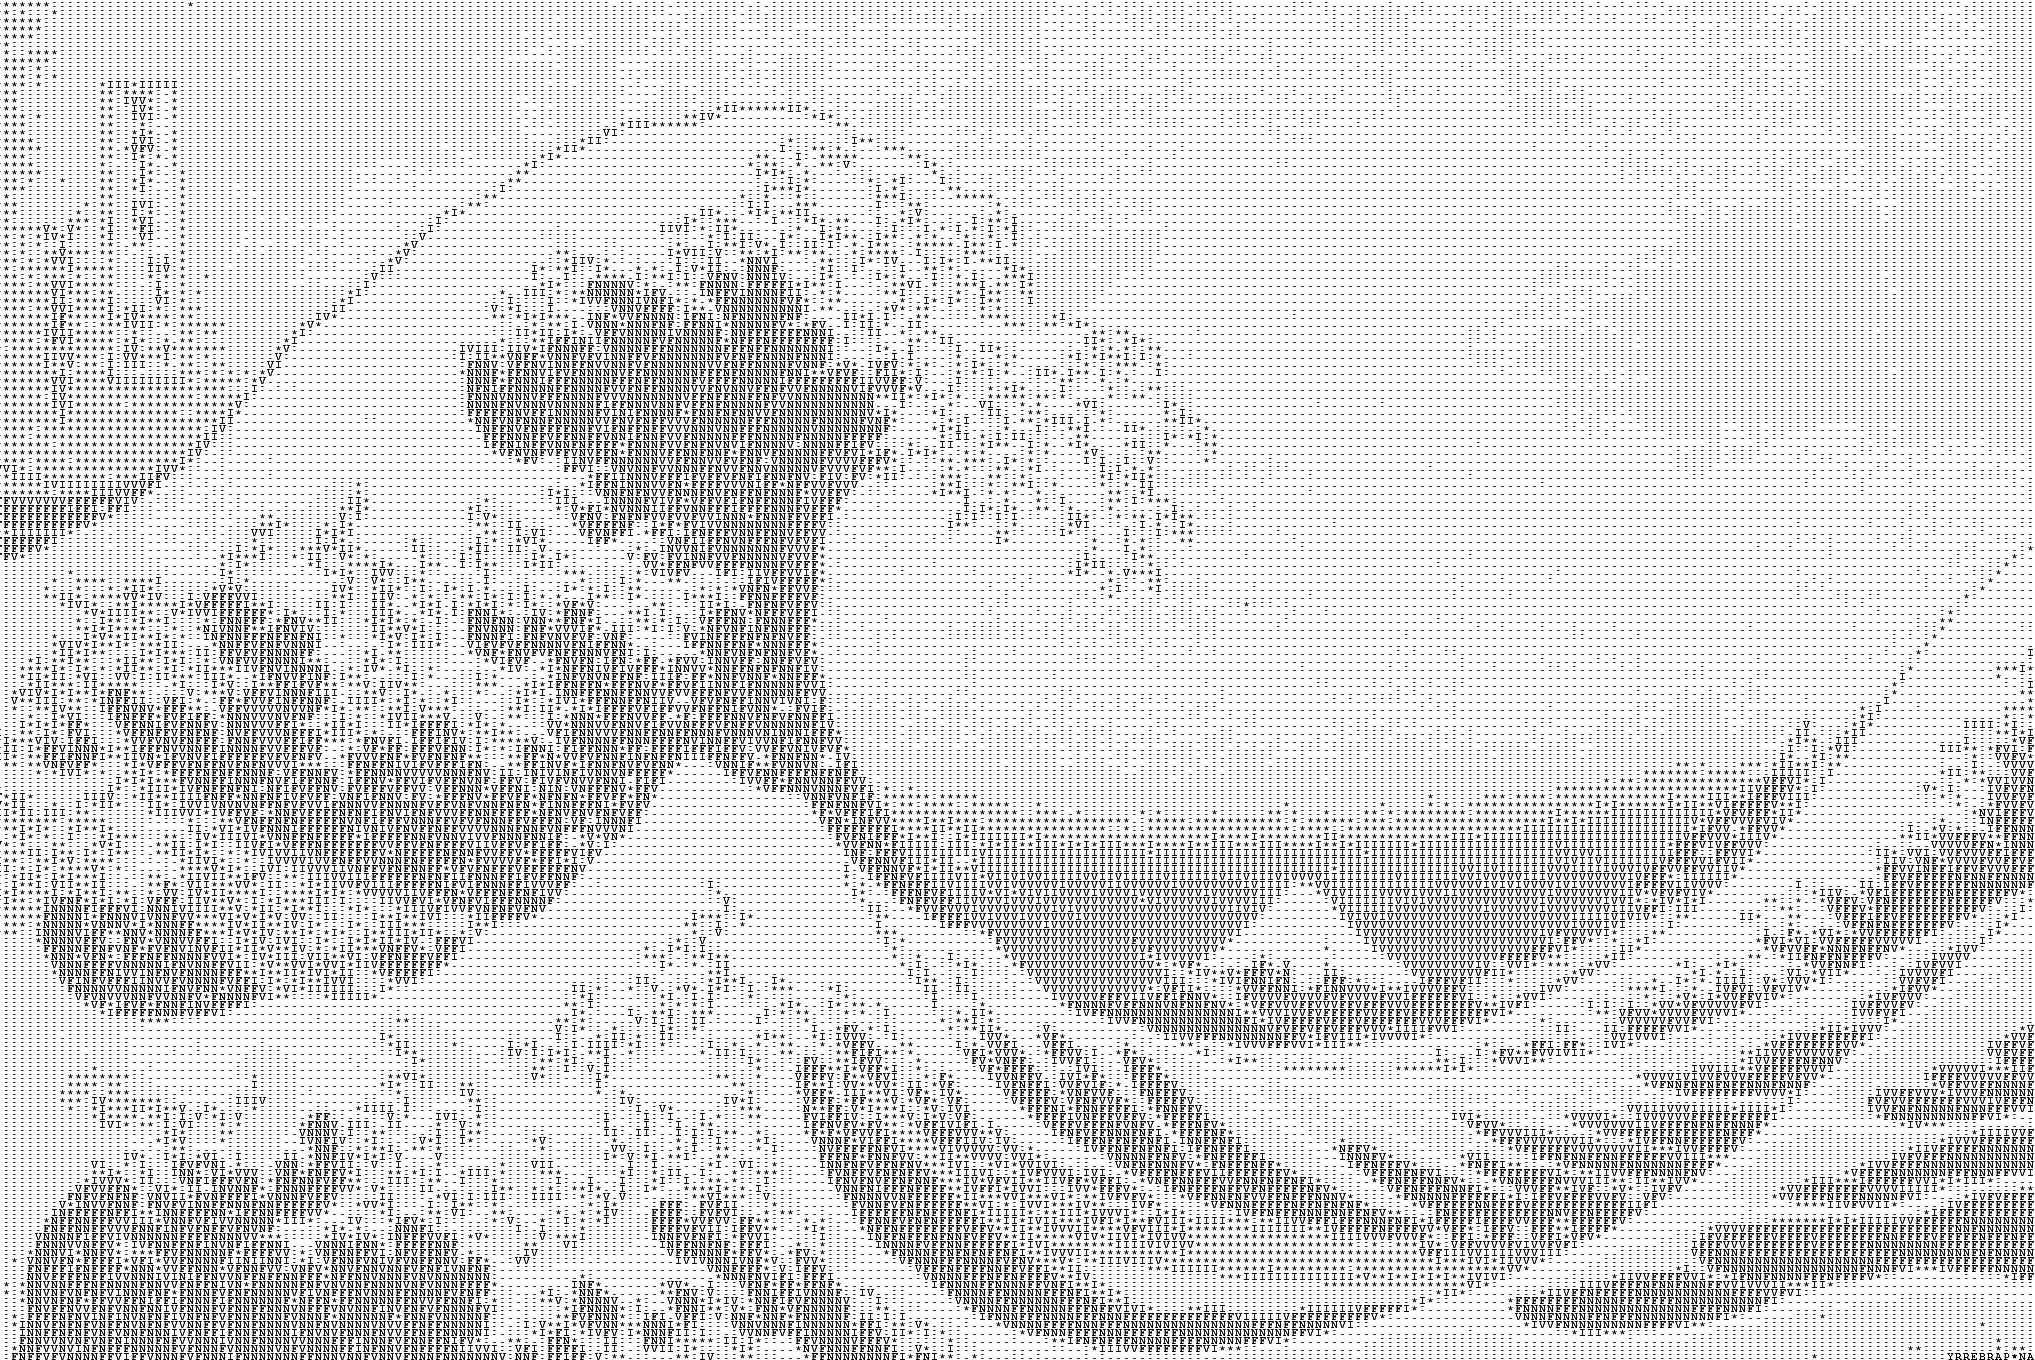 In the well of the great wave of Kanagawa | ASCII Art | Know Your Meme